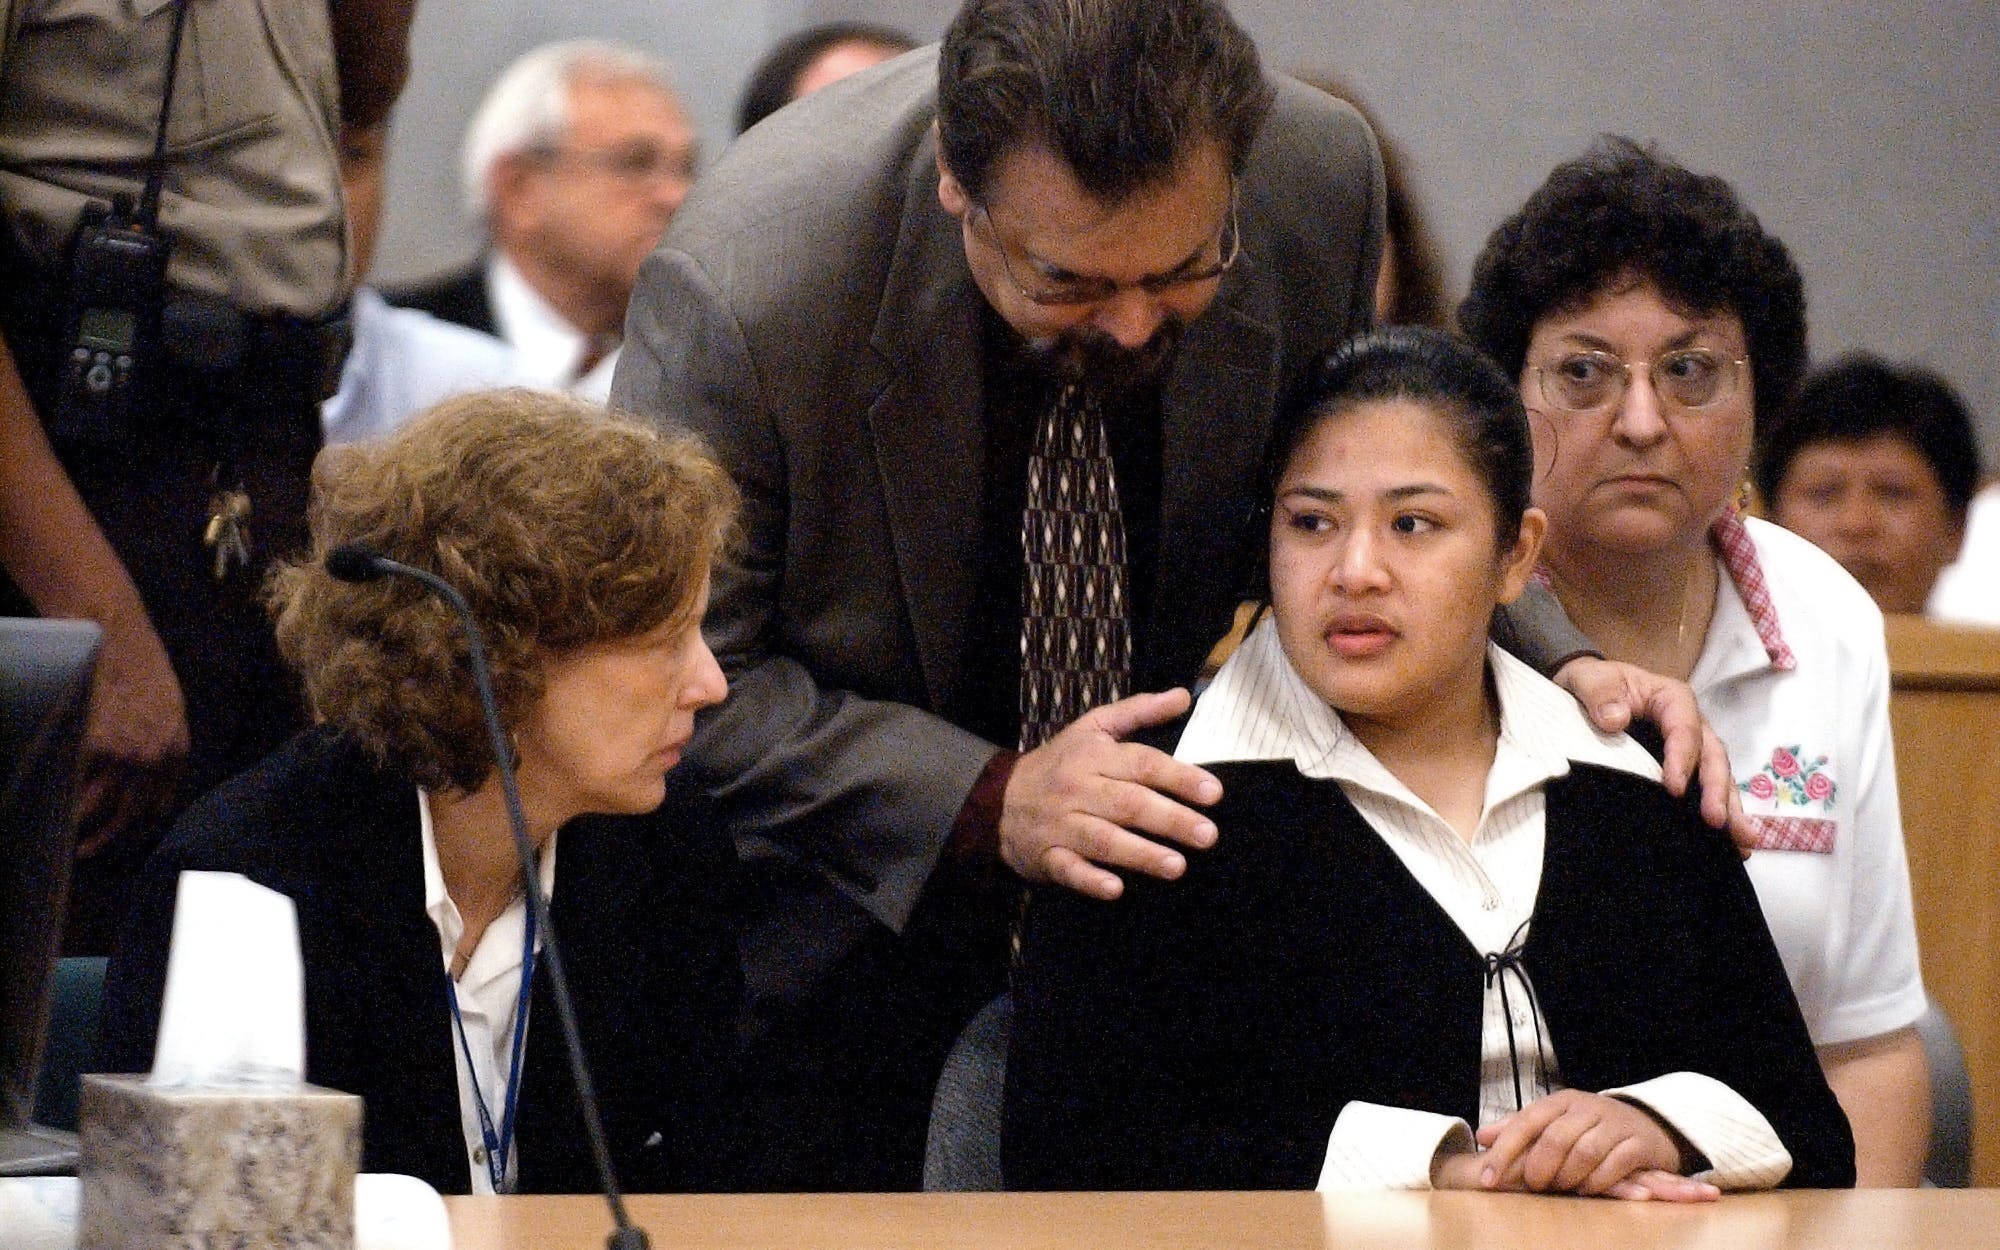 Rosa Jimenez' lawyer Leonard Martinez talks to her along with Catherine Haenni, left, and interpretor Maria Celeste Costley, right, in Judge Jon Wisser's courtroom on August 31, 2005. The jury came back with a verdict of guilty.